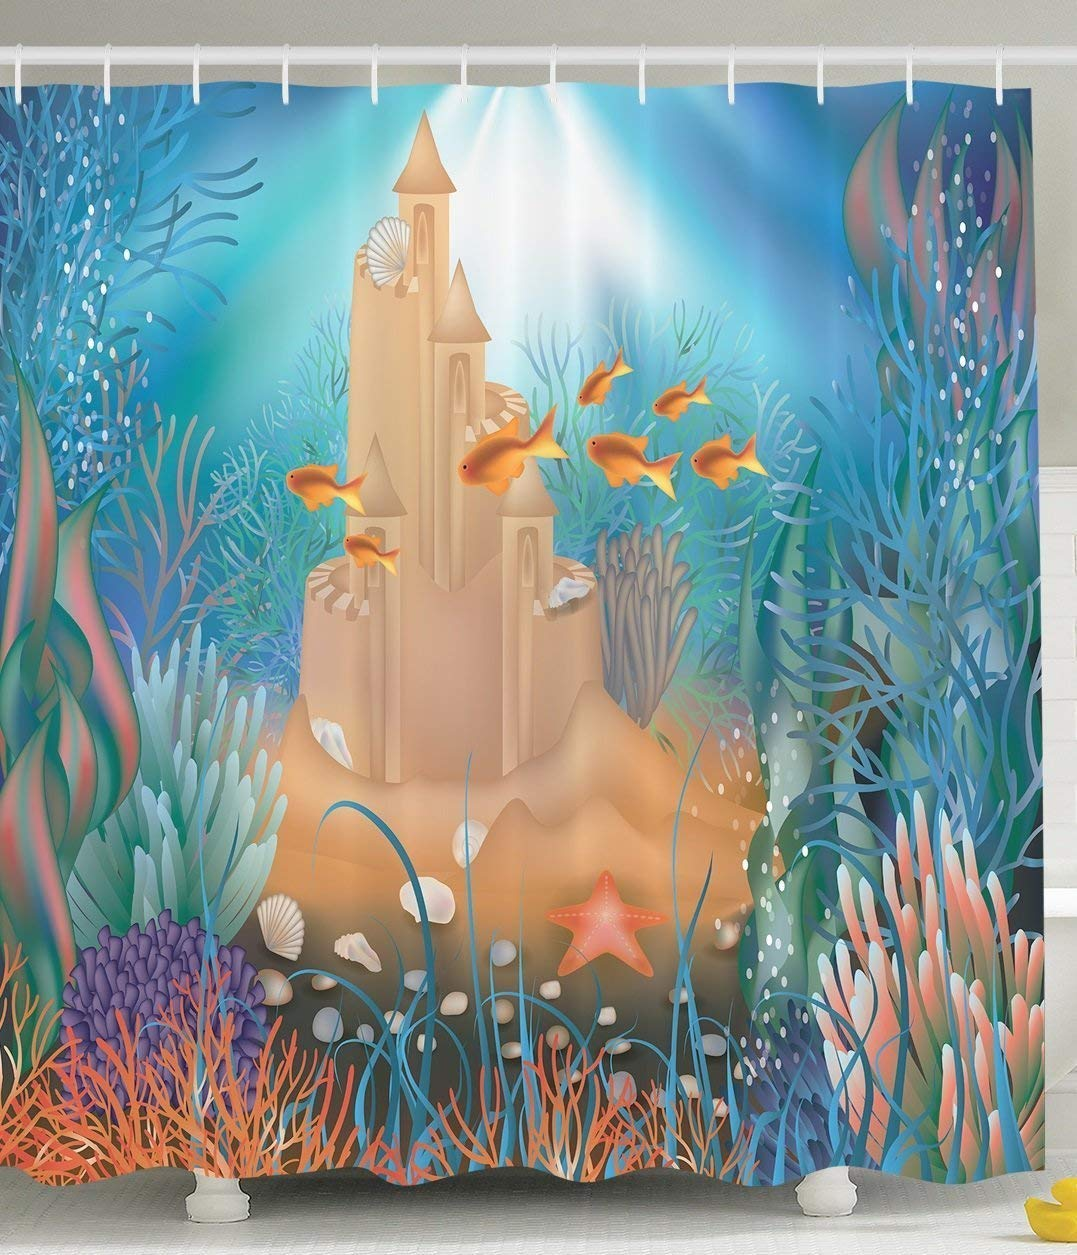 Kids Shower Curtain Nursery Decor 'Fairy Sea Sand Castle Underwater Dream World Sea 'Fairy Star Seashell Modern Art Tropical Fish Decorations for Bathroom Blue Aqua Turquoise Gold Khaki Purple Coral 60 X 72